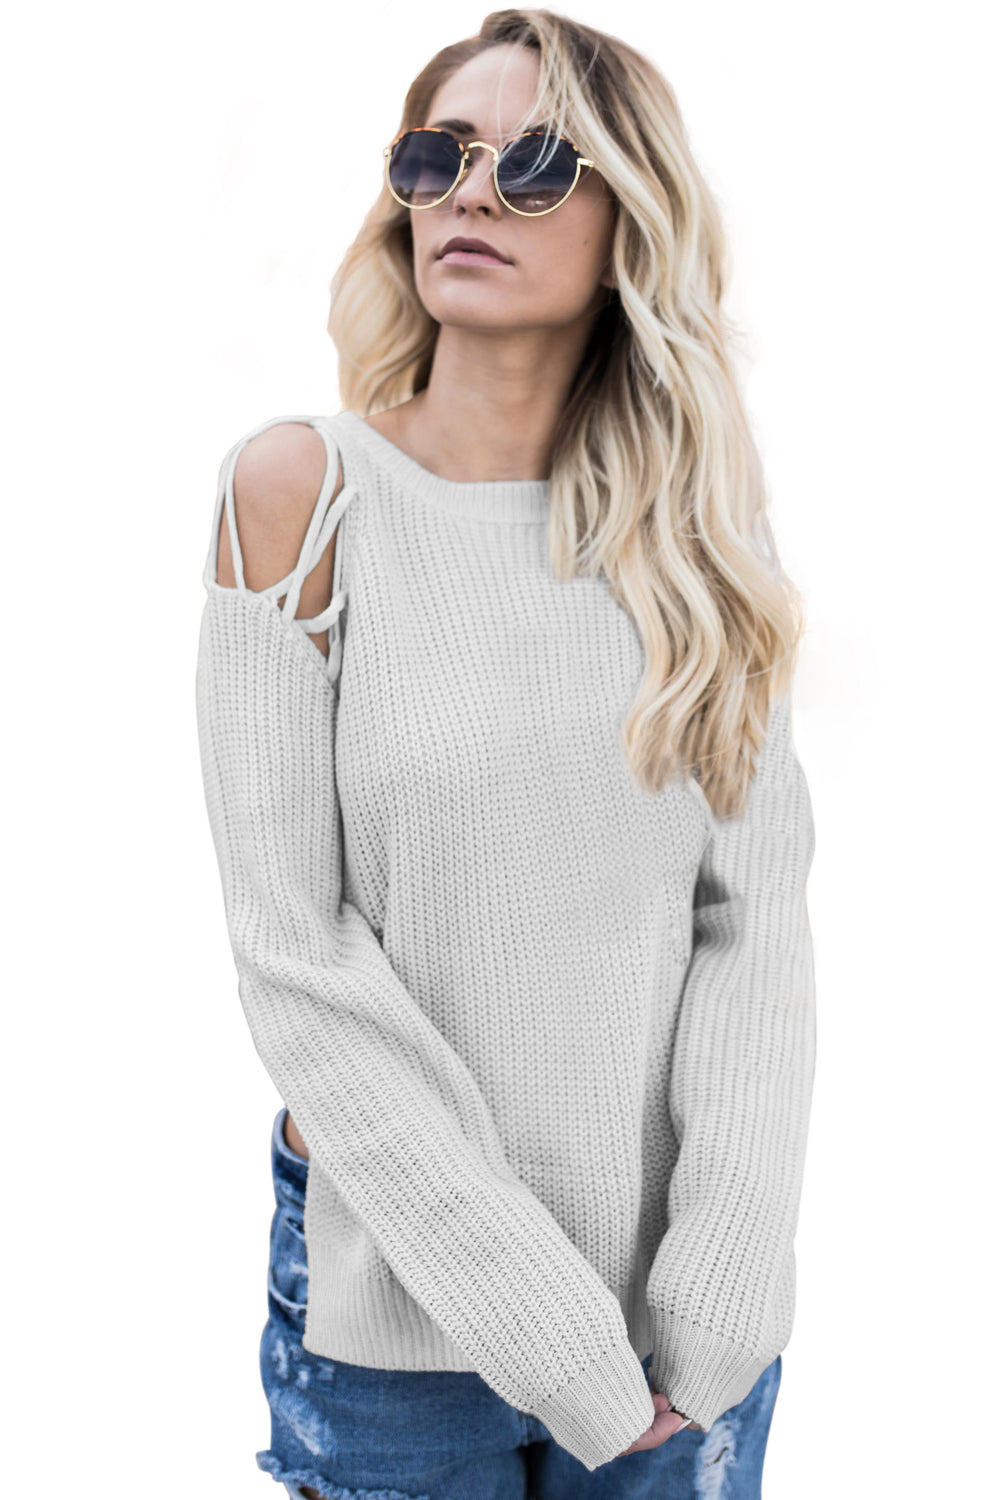 Chicloth Gray Lace up Shoulder Sweater - S / Gray